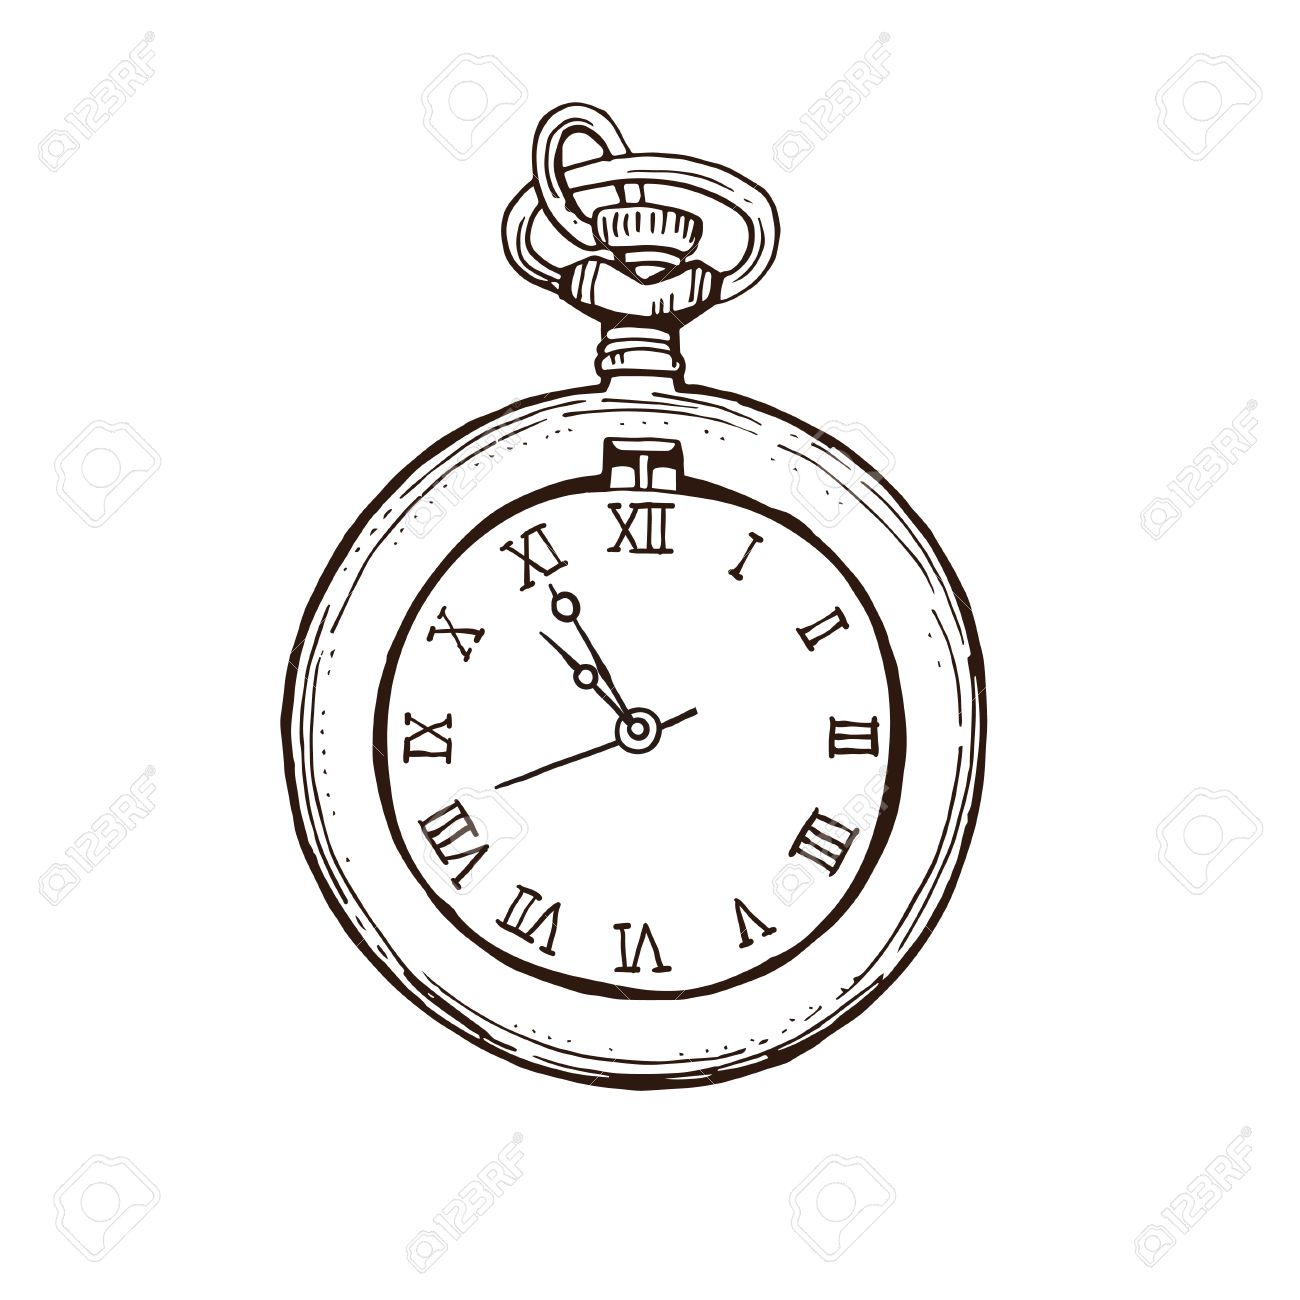 1300x1300 Open Pocket Watch In Vintage Style. Hand Drawn Ink Sketch Vector